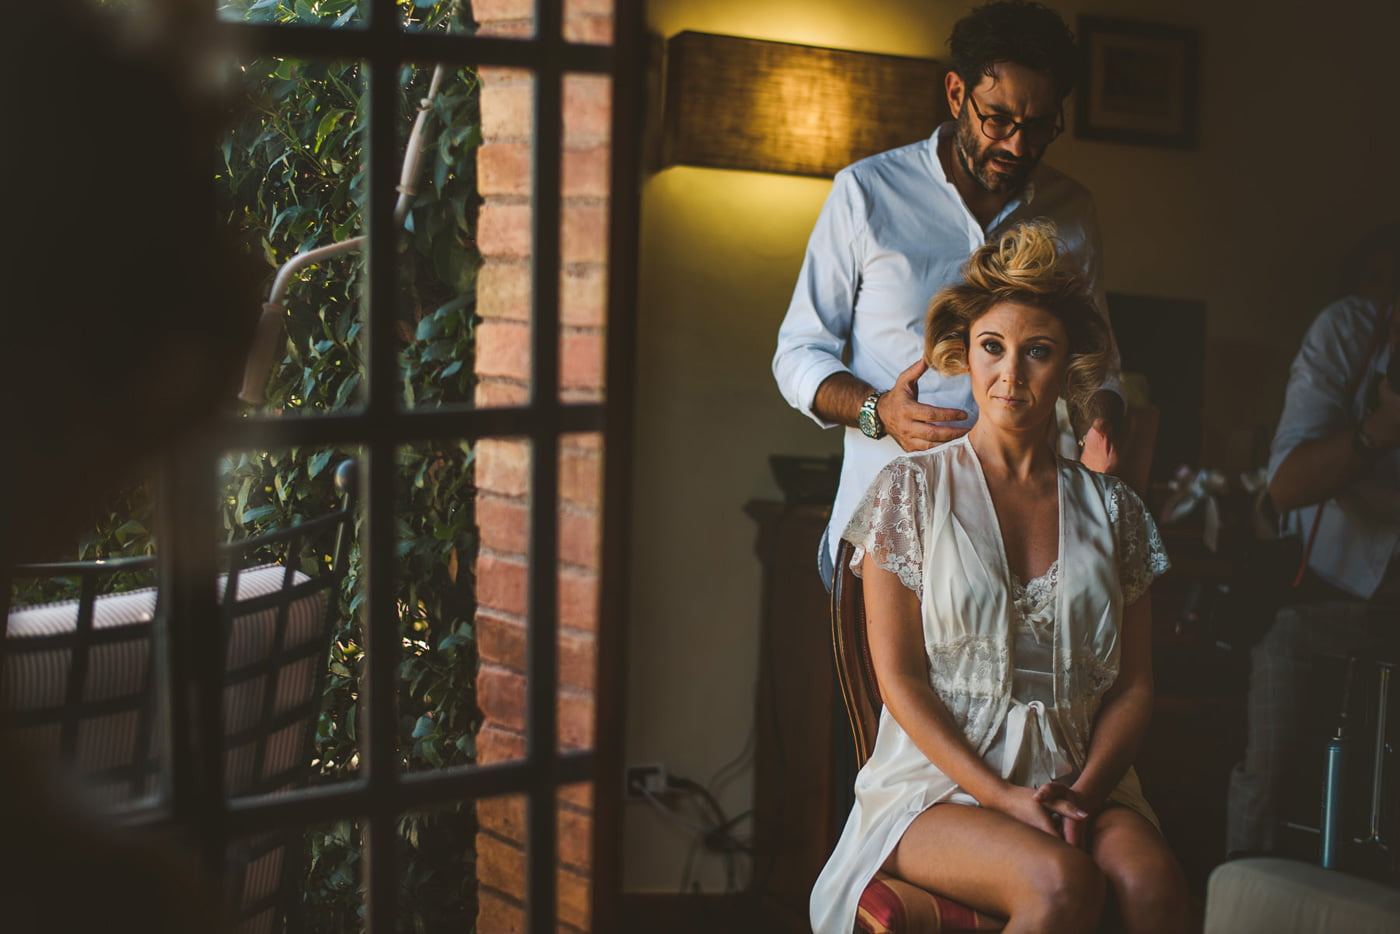 Andrea & Francesca | Wedding at Borgo San Luigi by Federico Pannacci 11